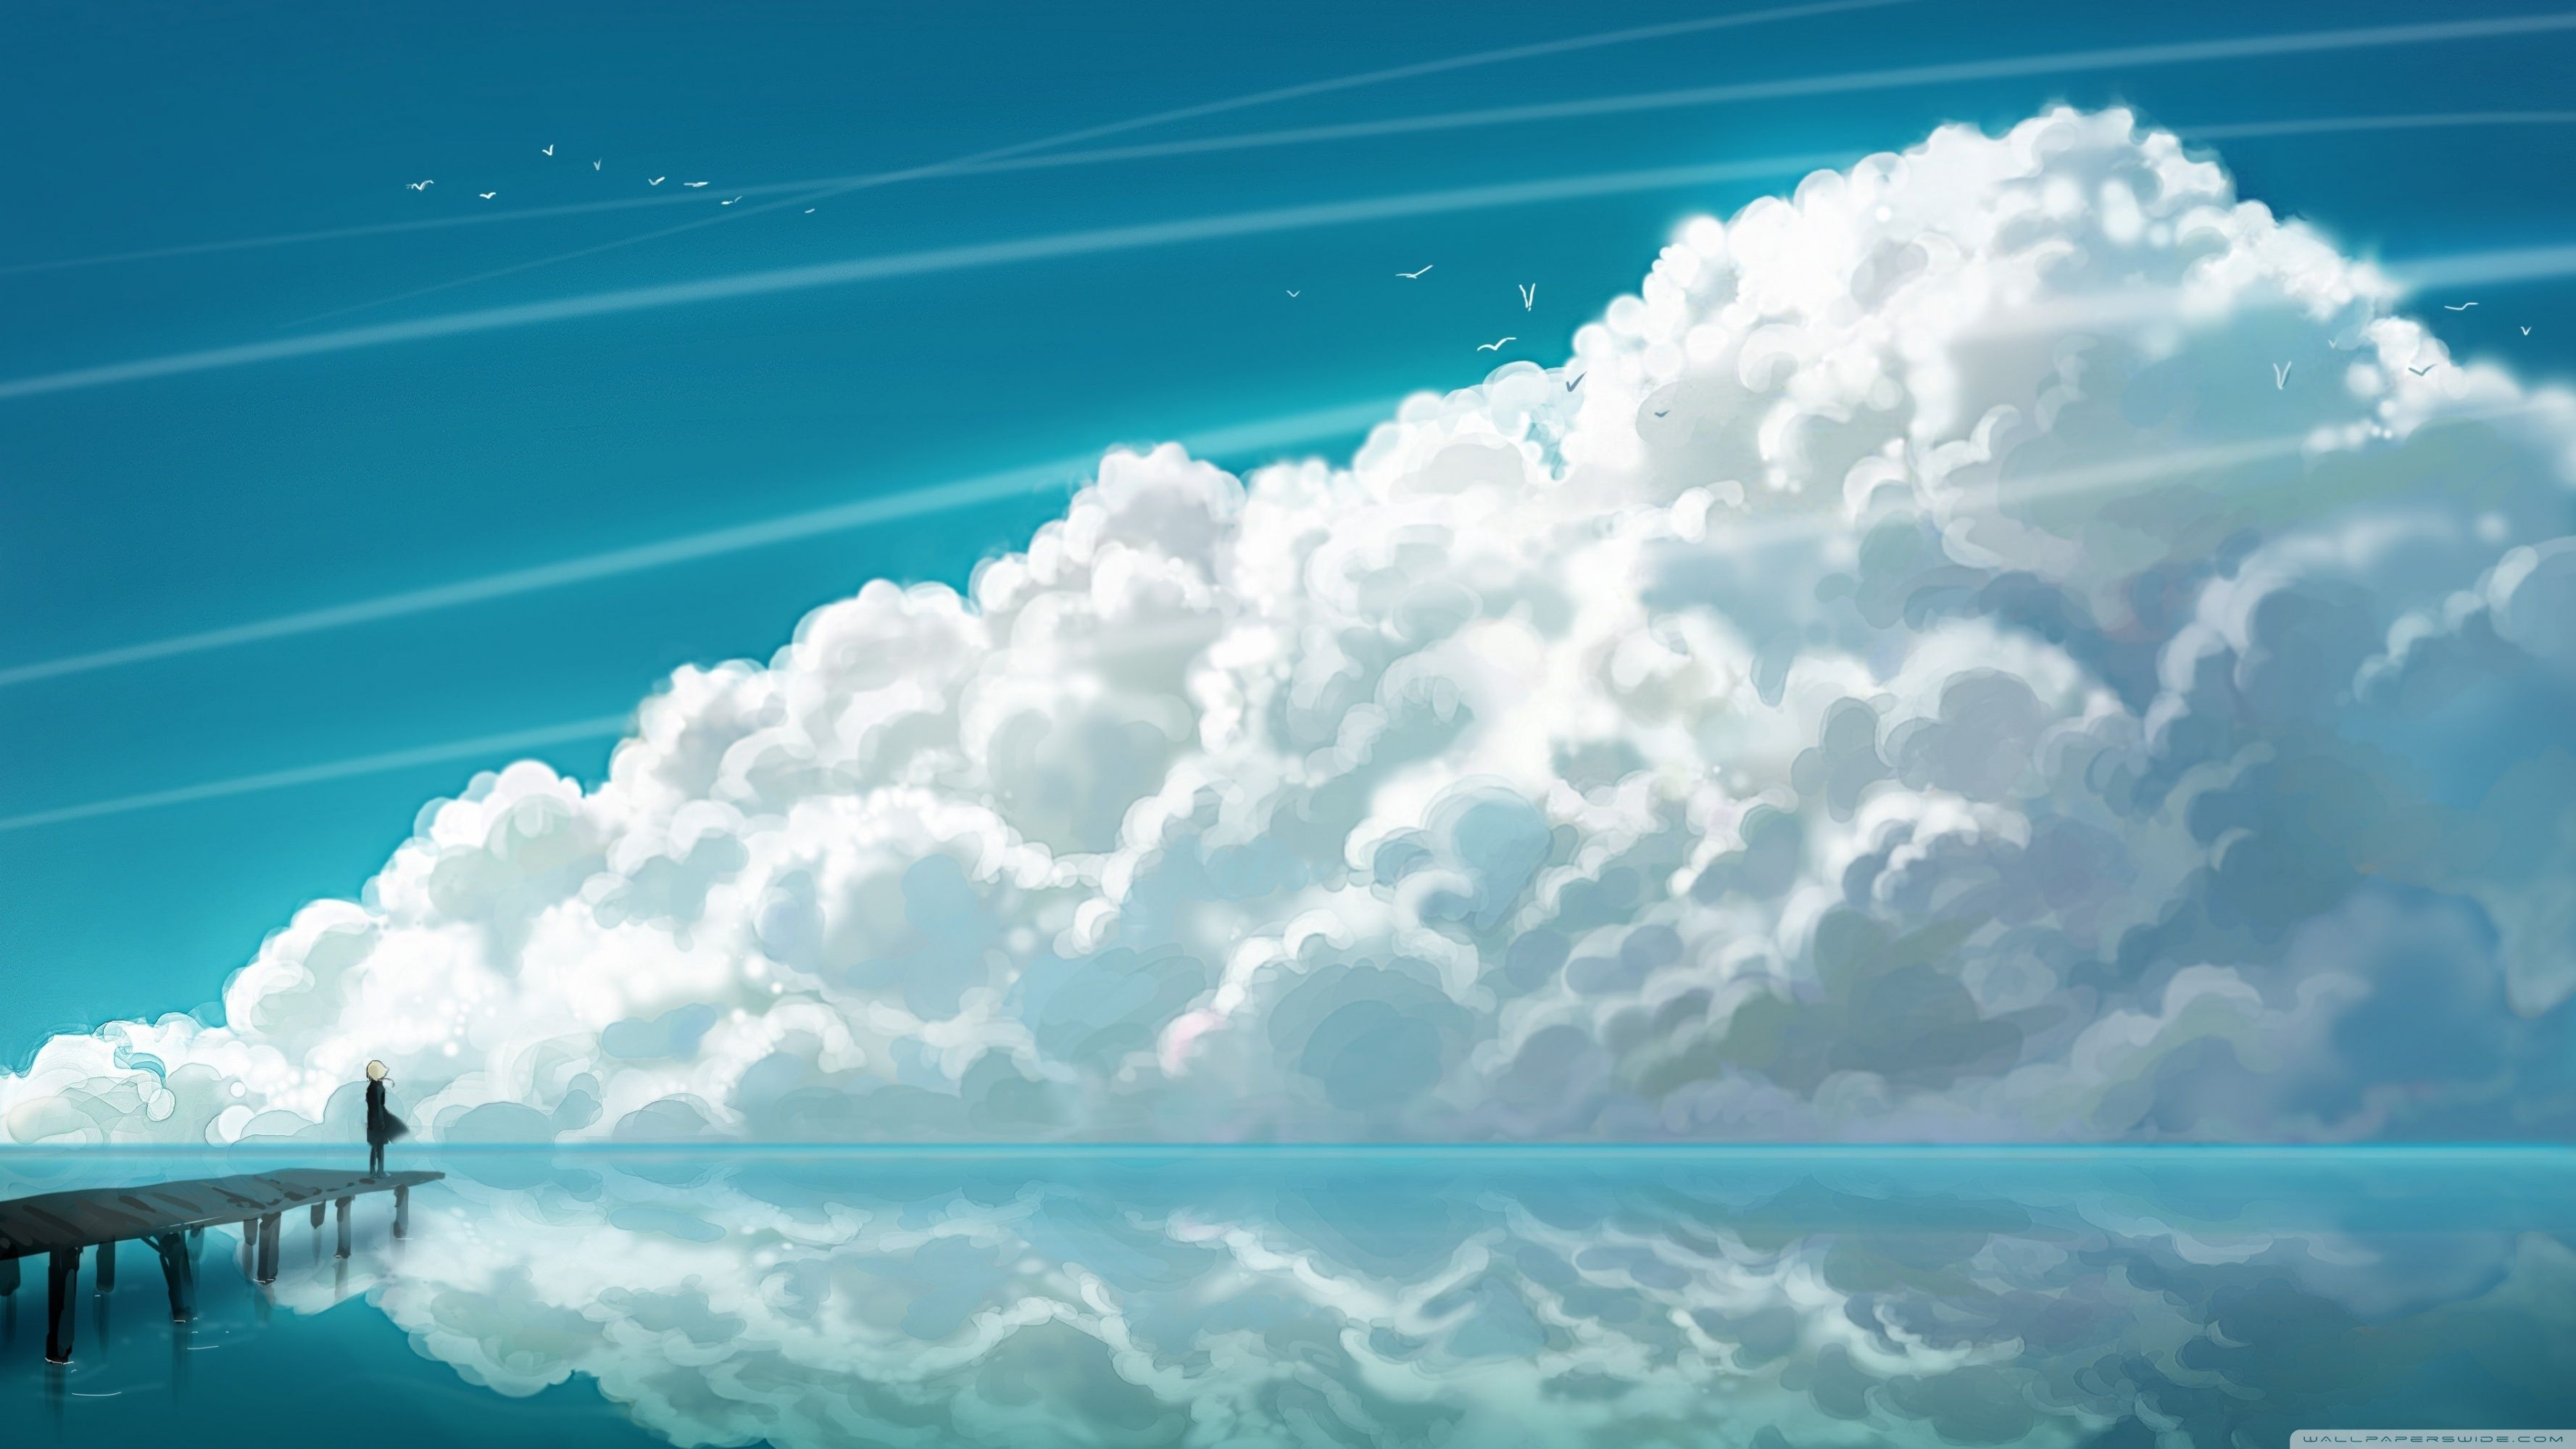 Serene Anime Scenery Wallpaper Clouds Scenery Wallpaper